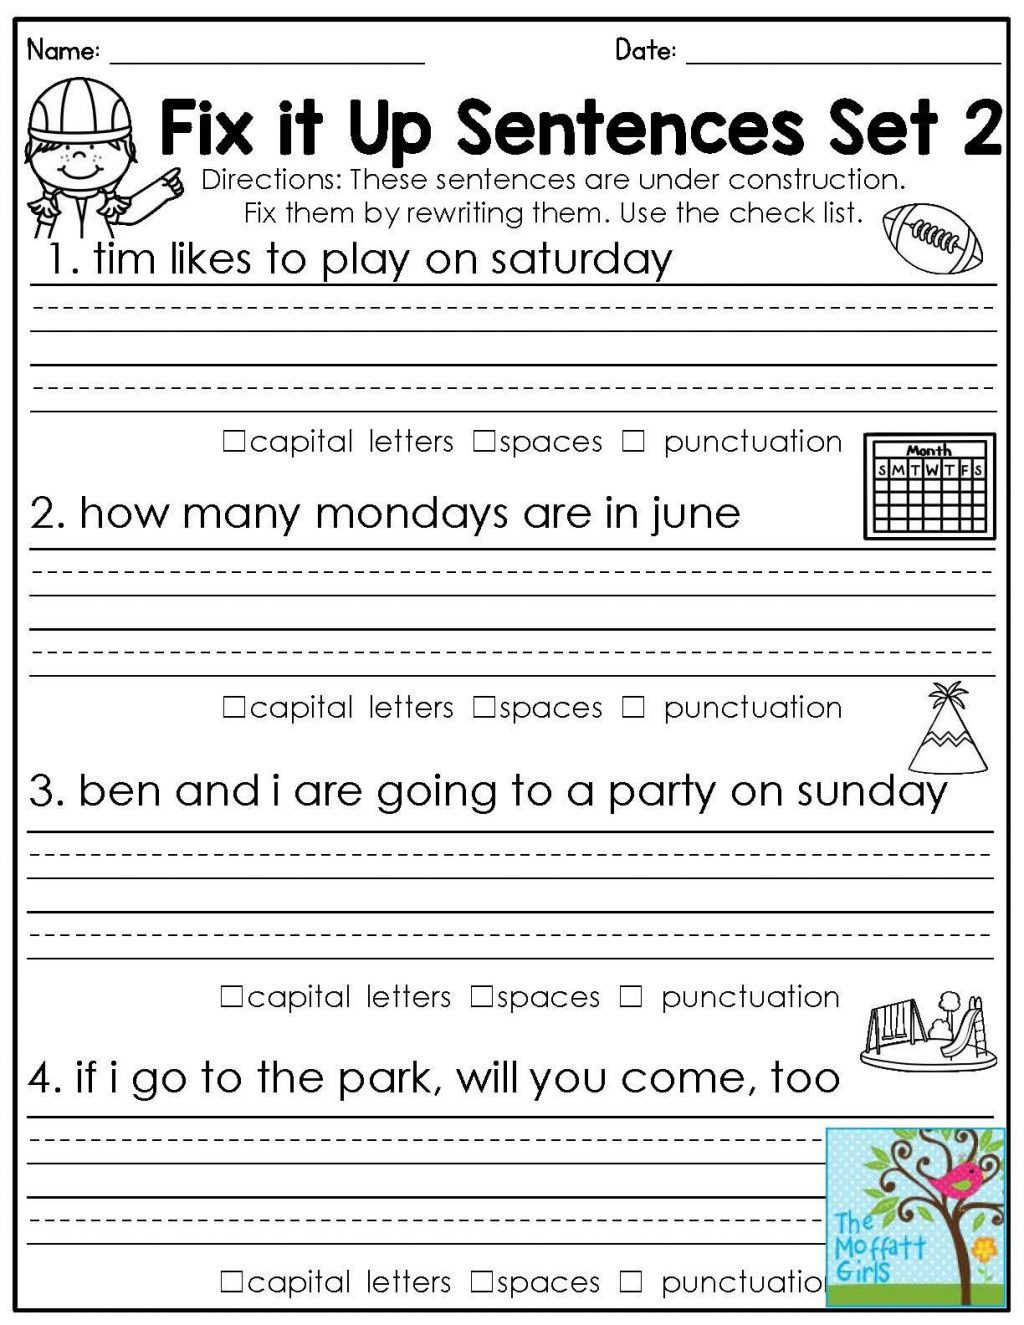 Grammar Worksheets for 2nd Grade 4 Free Grammar Worksheets Third Grade 3 Capitalization